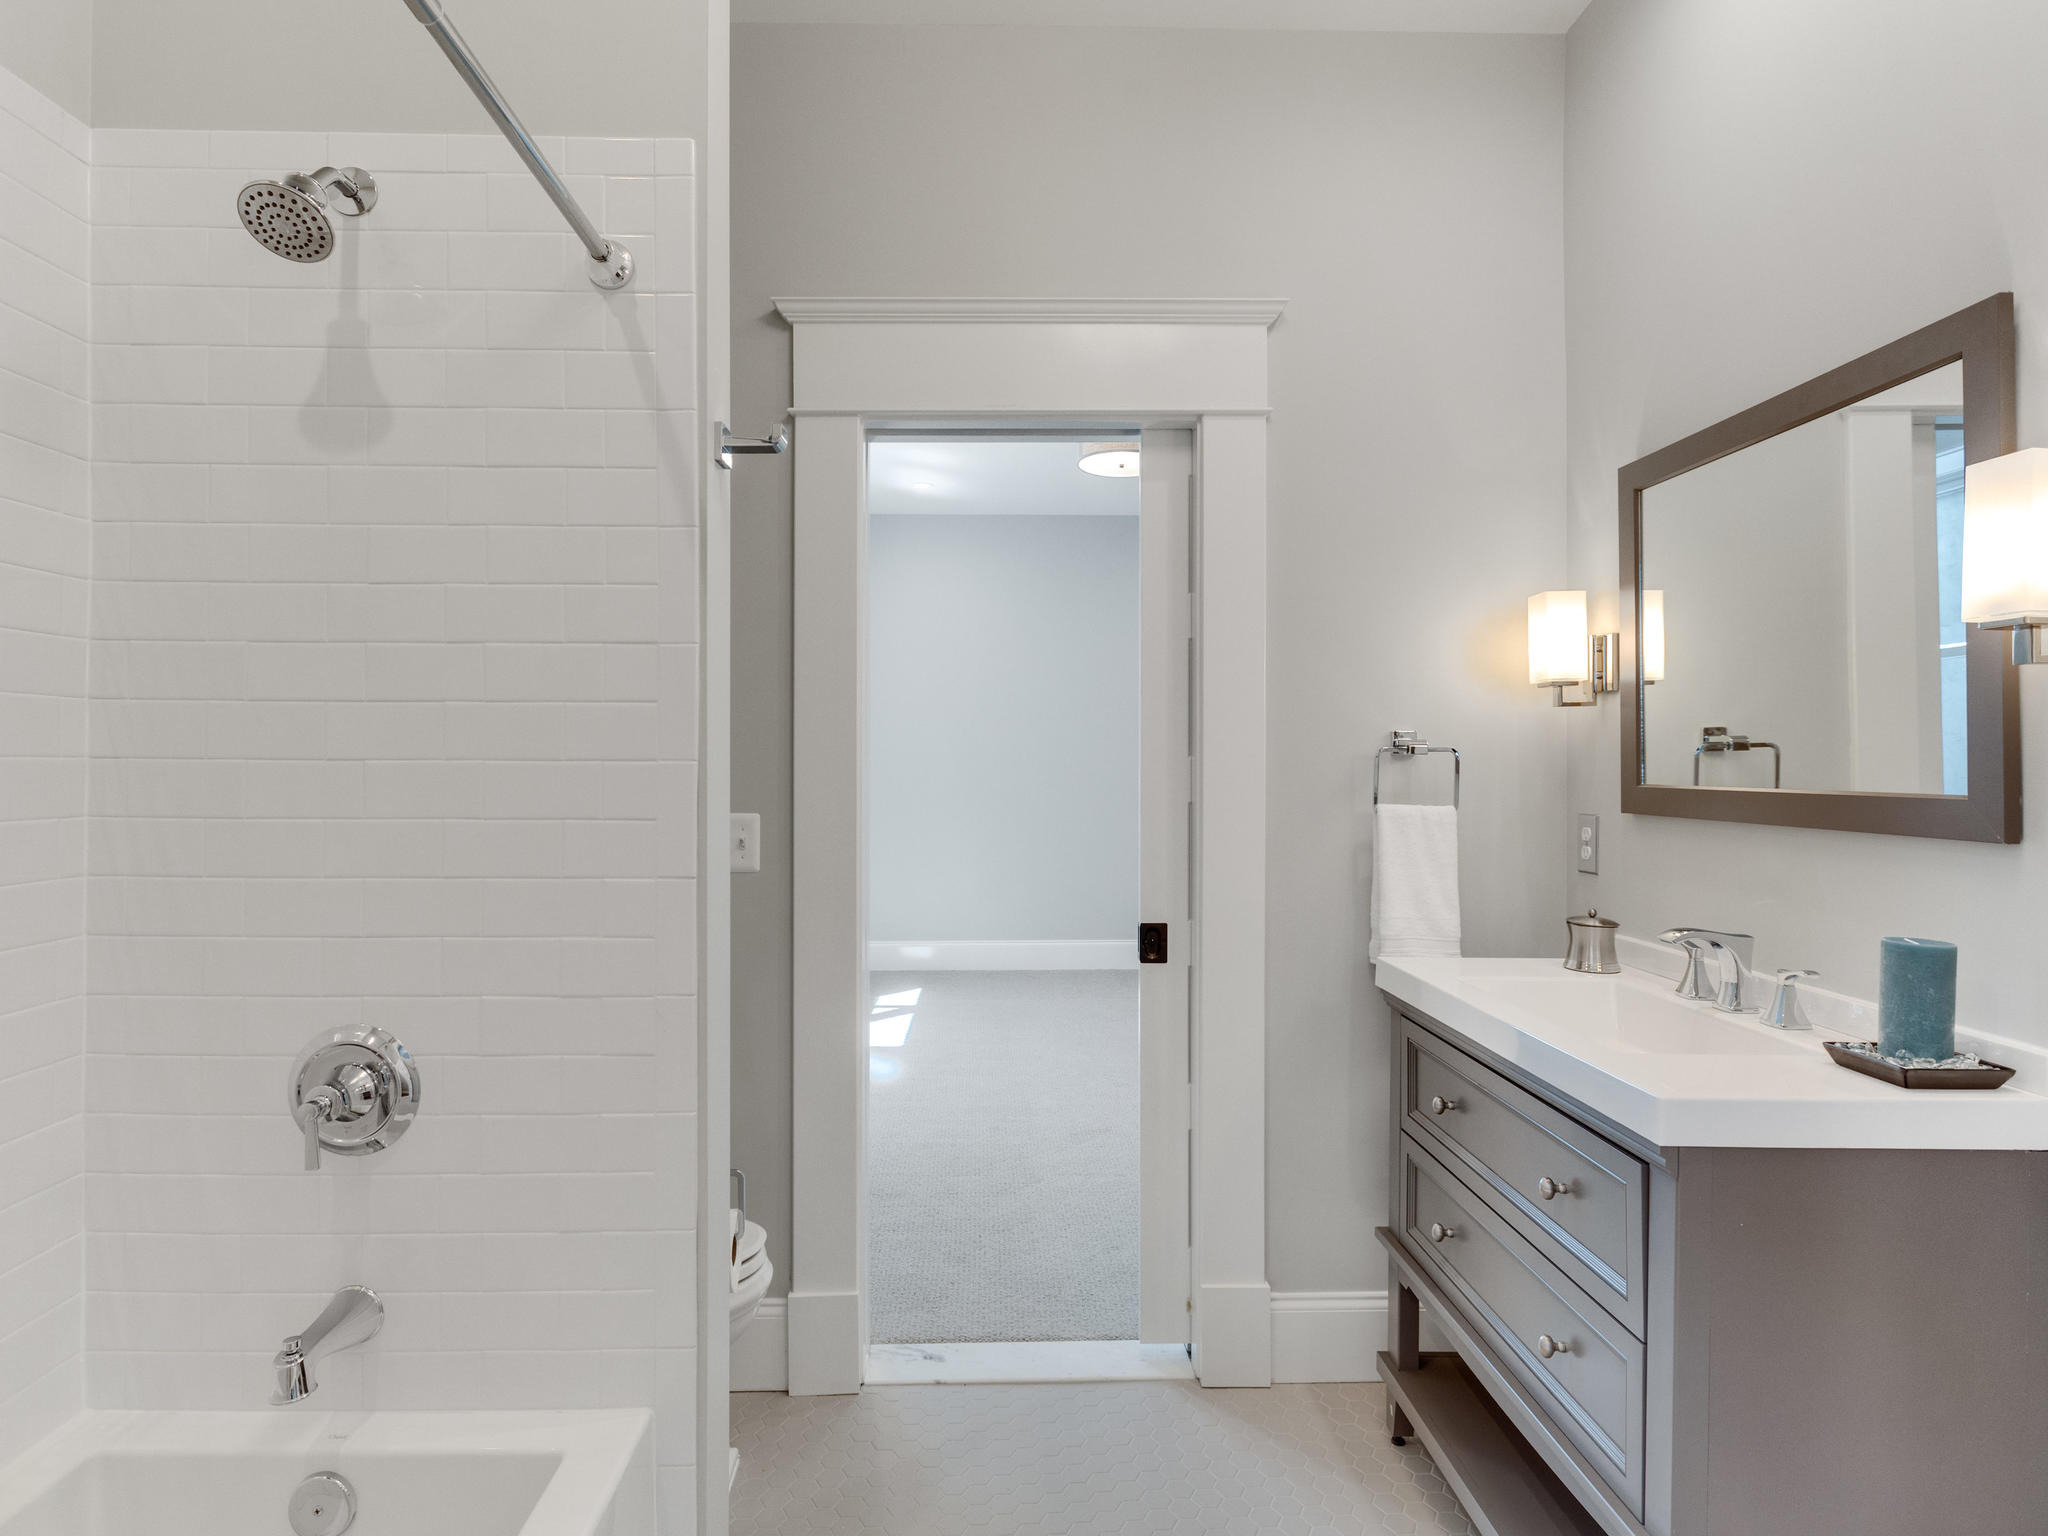 Lower level full bath. Custom Home by Custom Builder, North Arlington, VA 22207